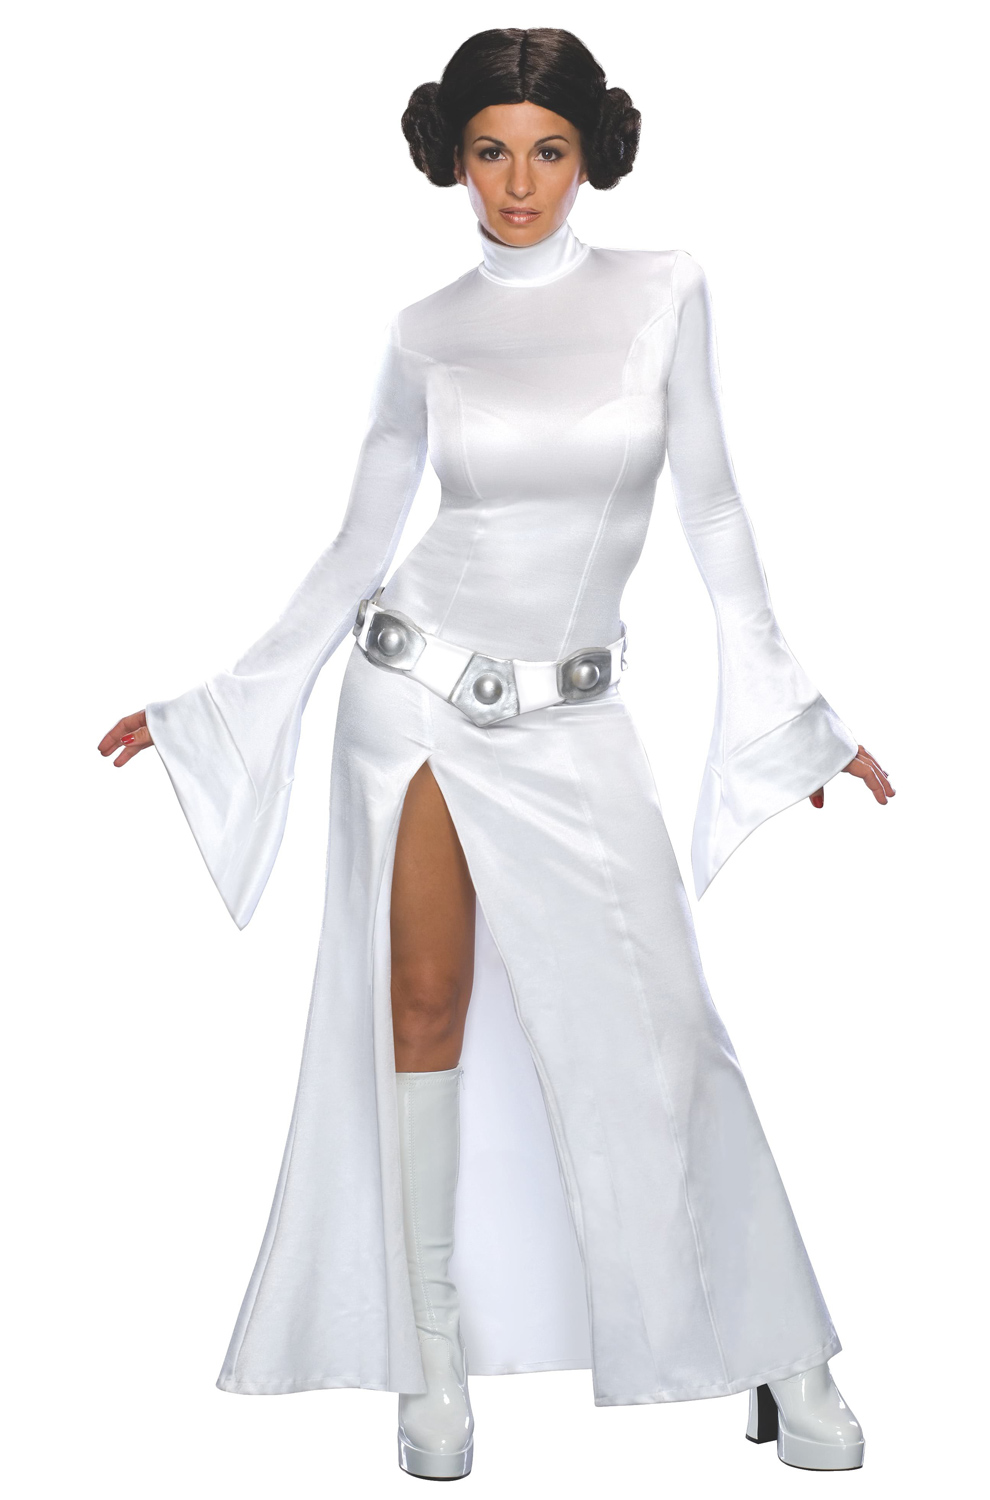 Click Here to buy Star Wars Princess Leia Adult Costume from Pure Costumes